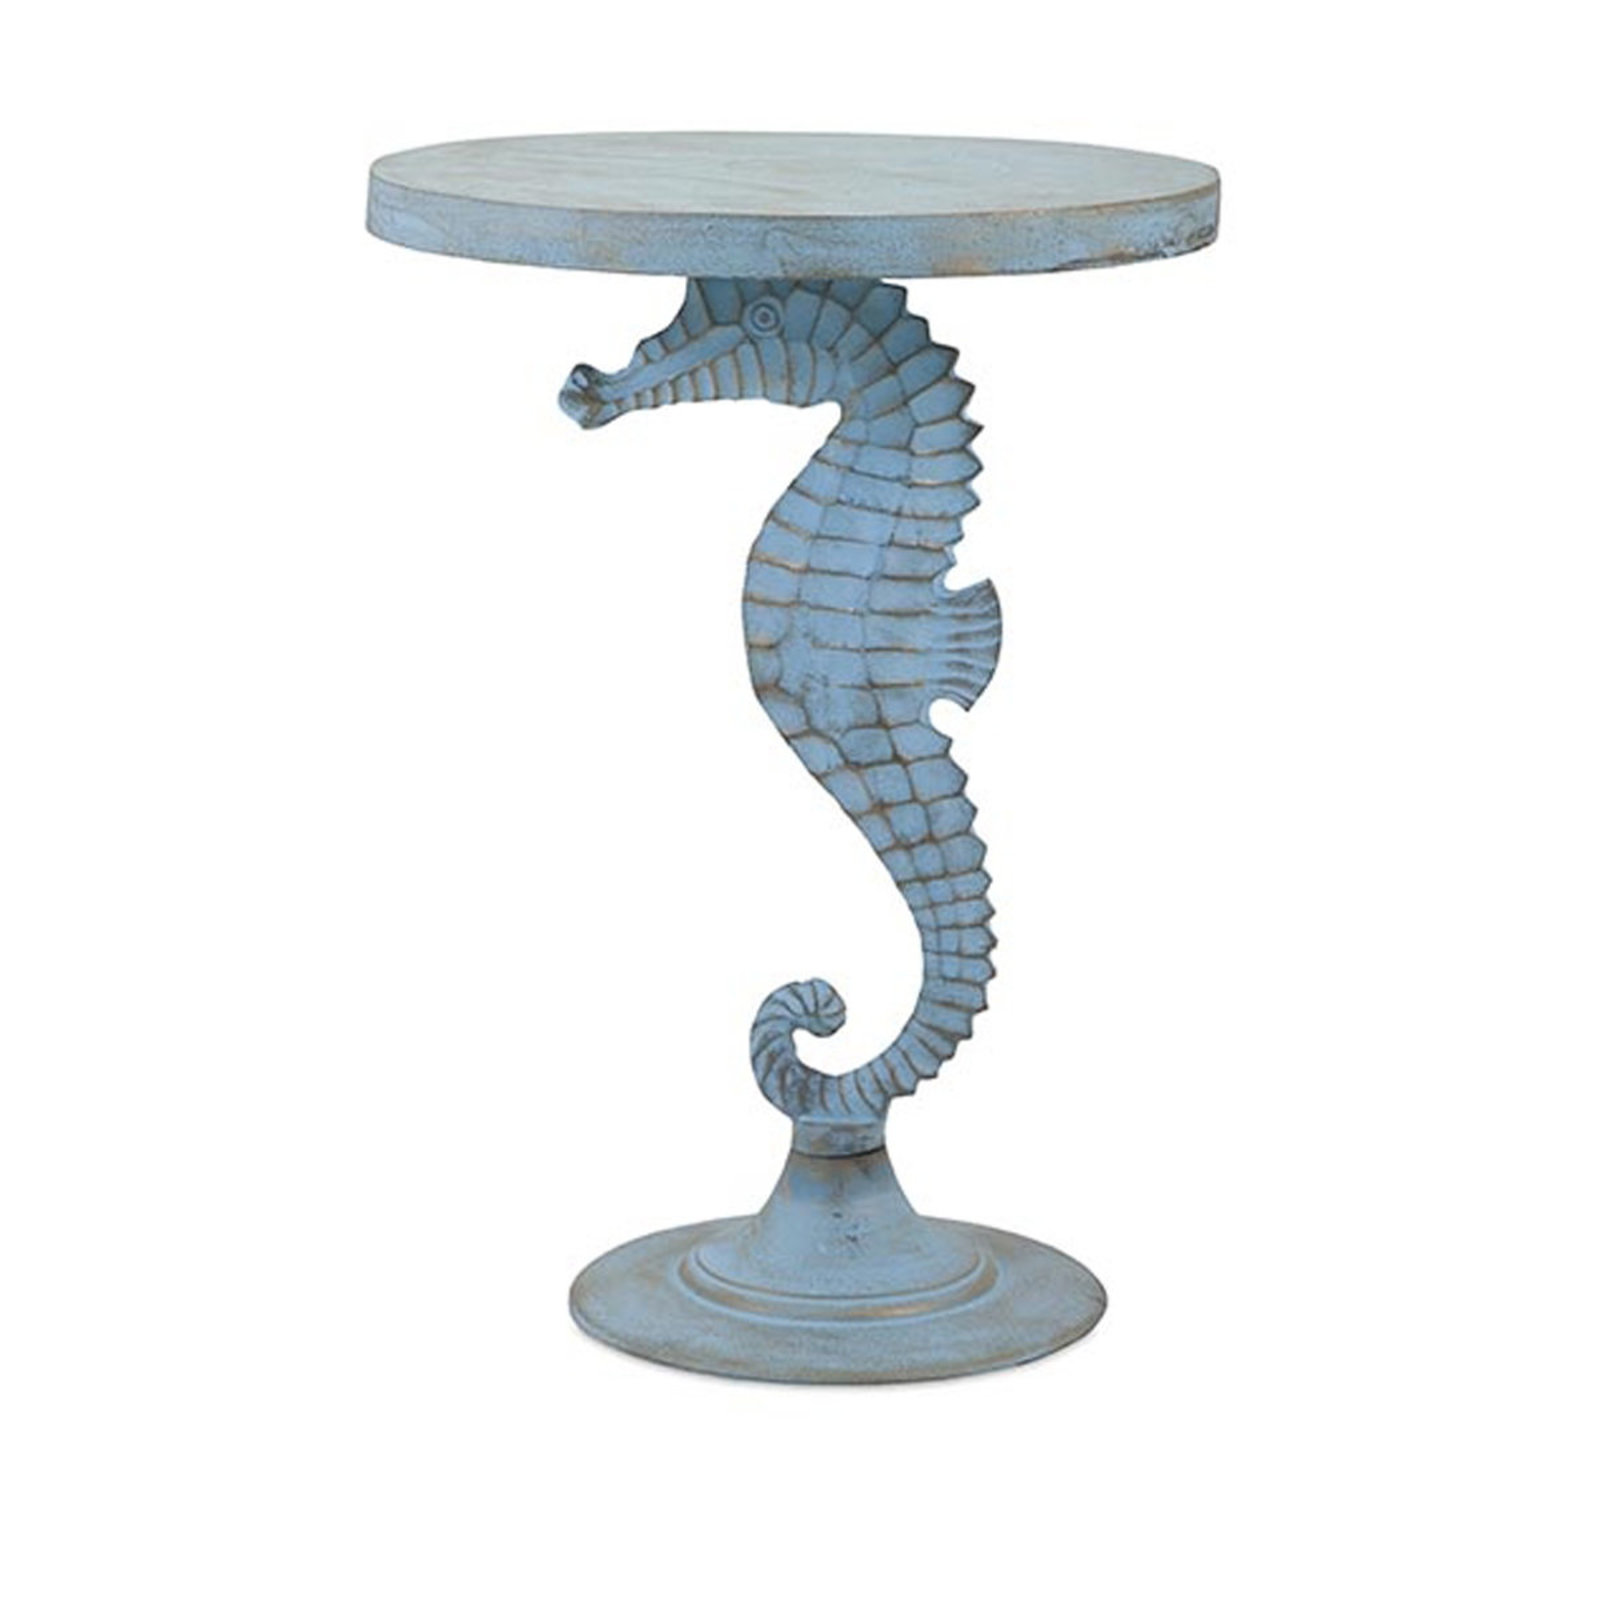 coffee tables side shades light weathered coastal seahorse accent table round wicker console with drawers ikea frosted glass silver drum cast iron patio furniture small narrow end